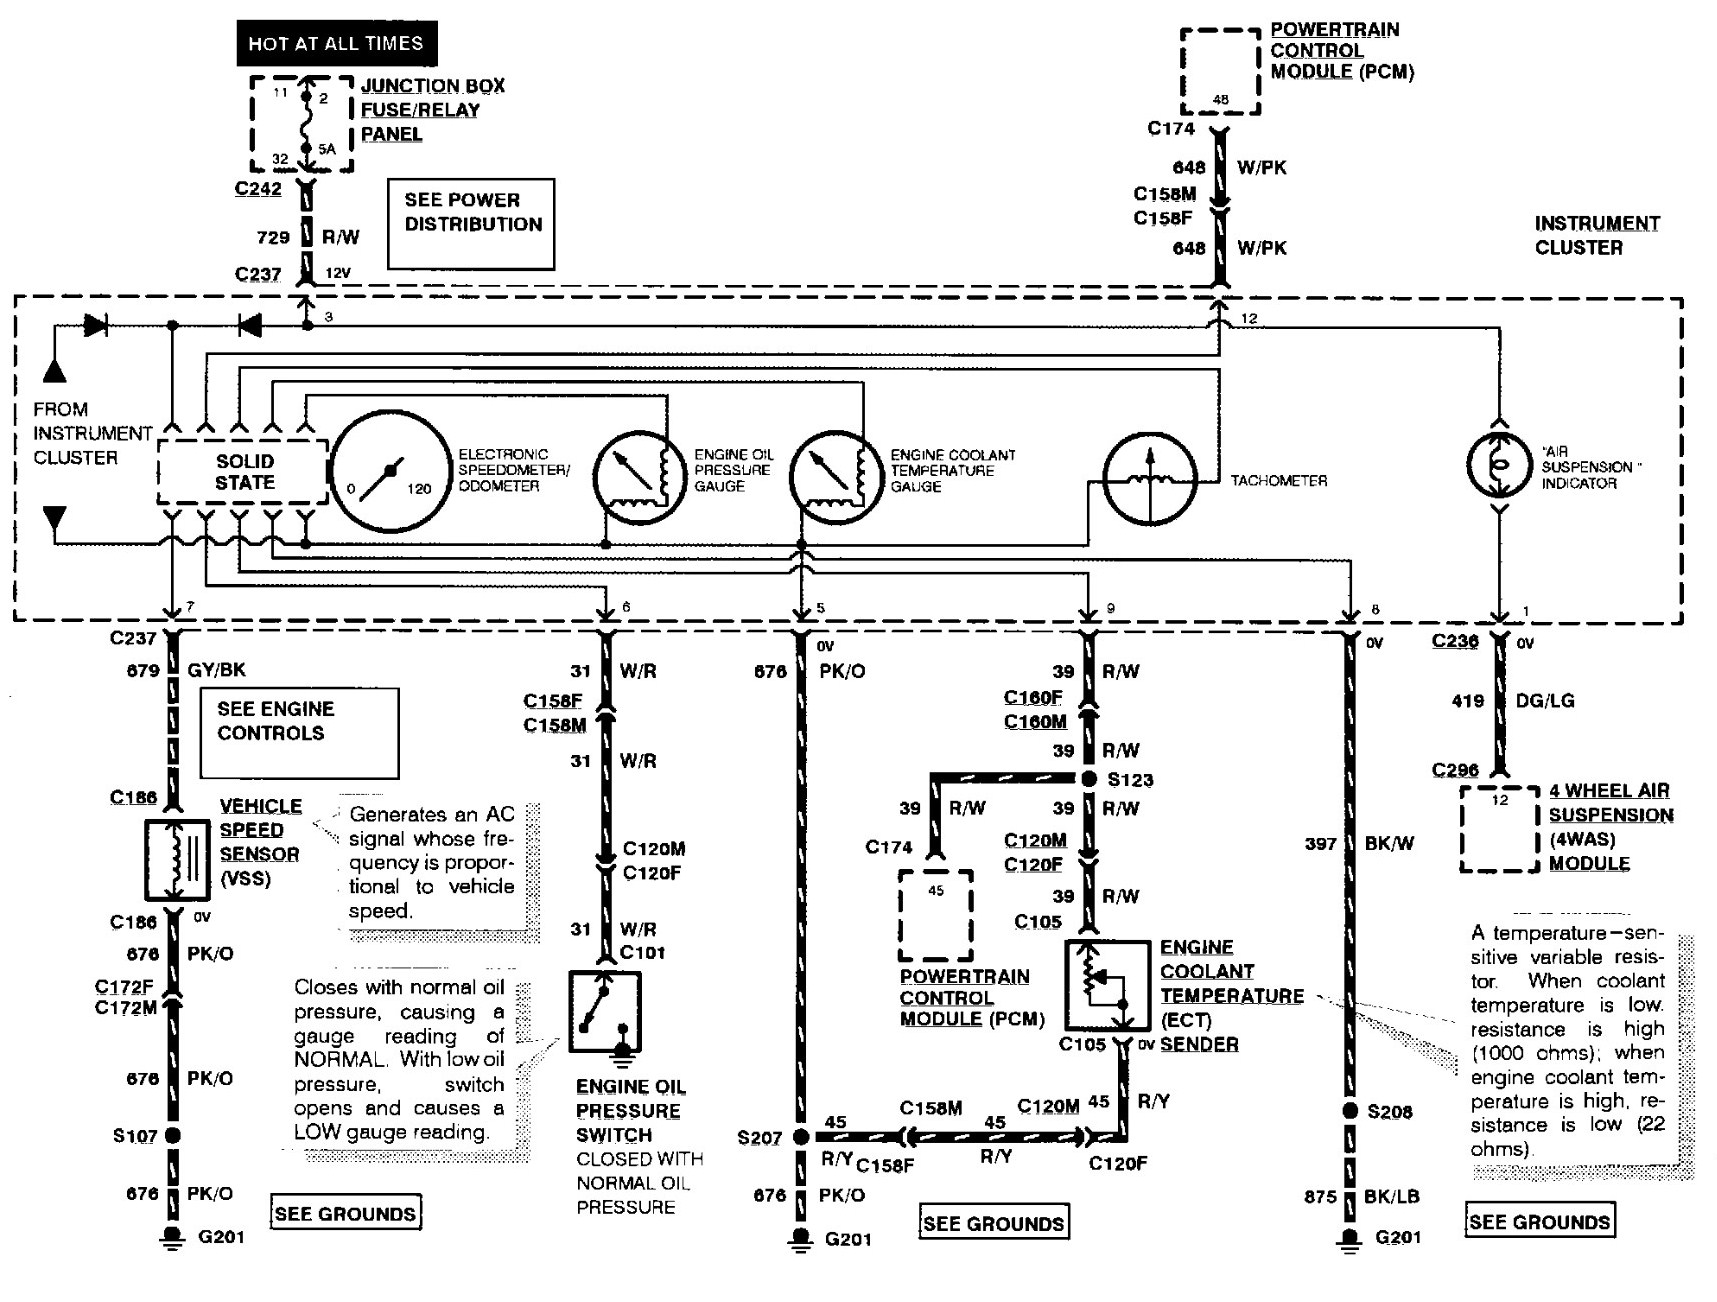 34 Ford Expedition Wiring Diagram - Wiring Diagram List